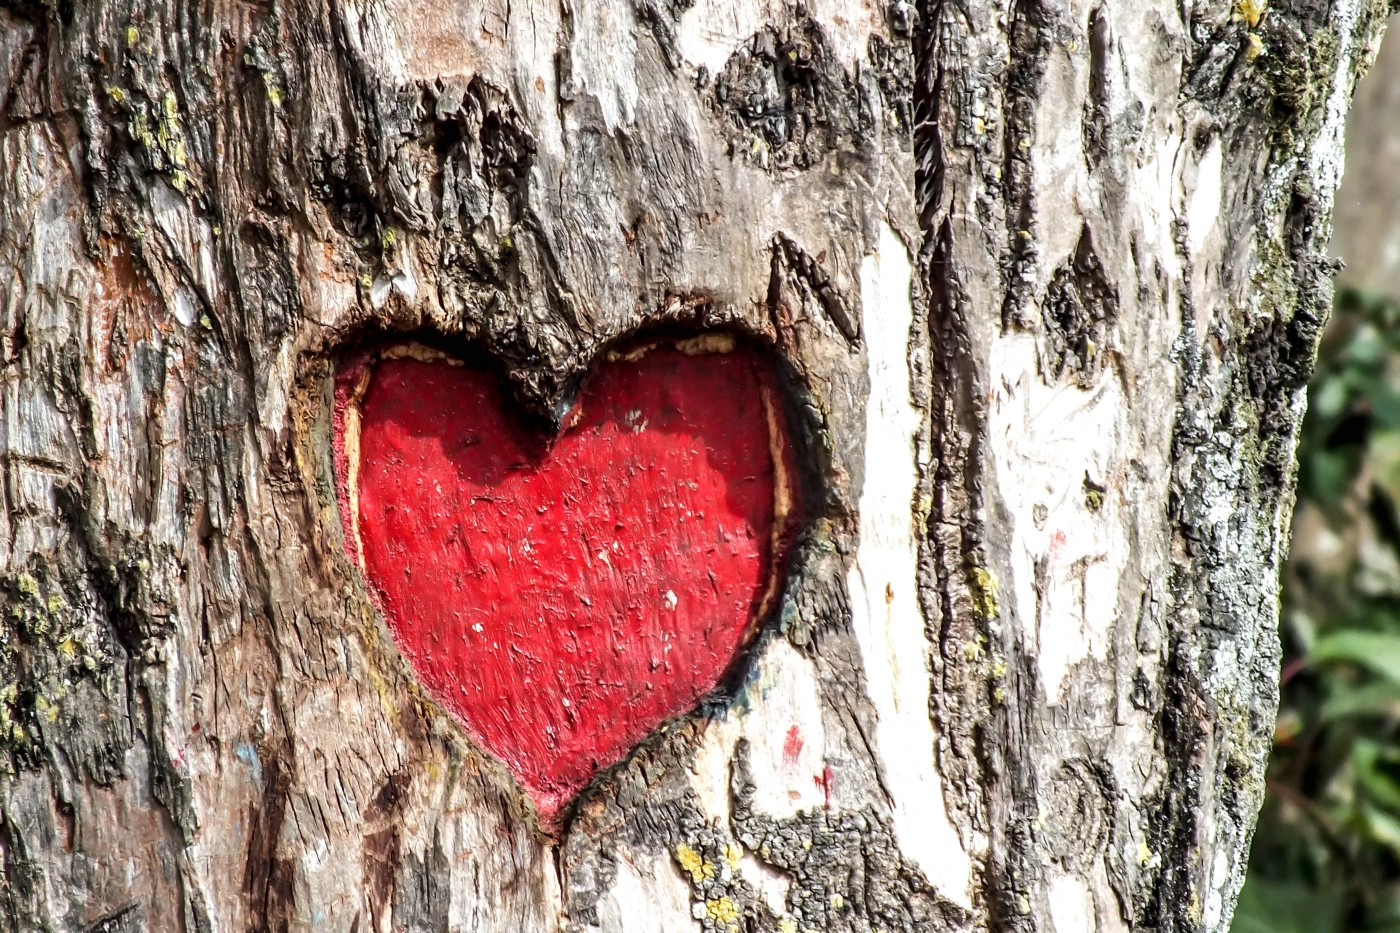 A red heart carved into the bark of a tree.